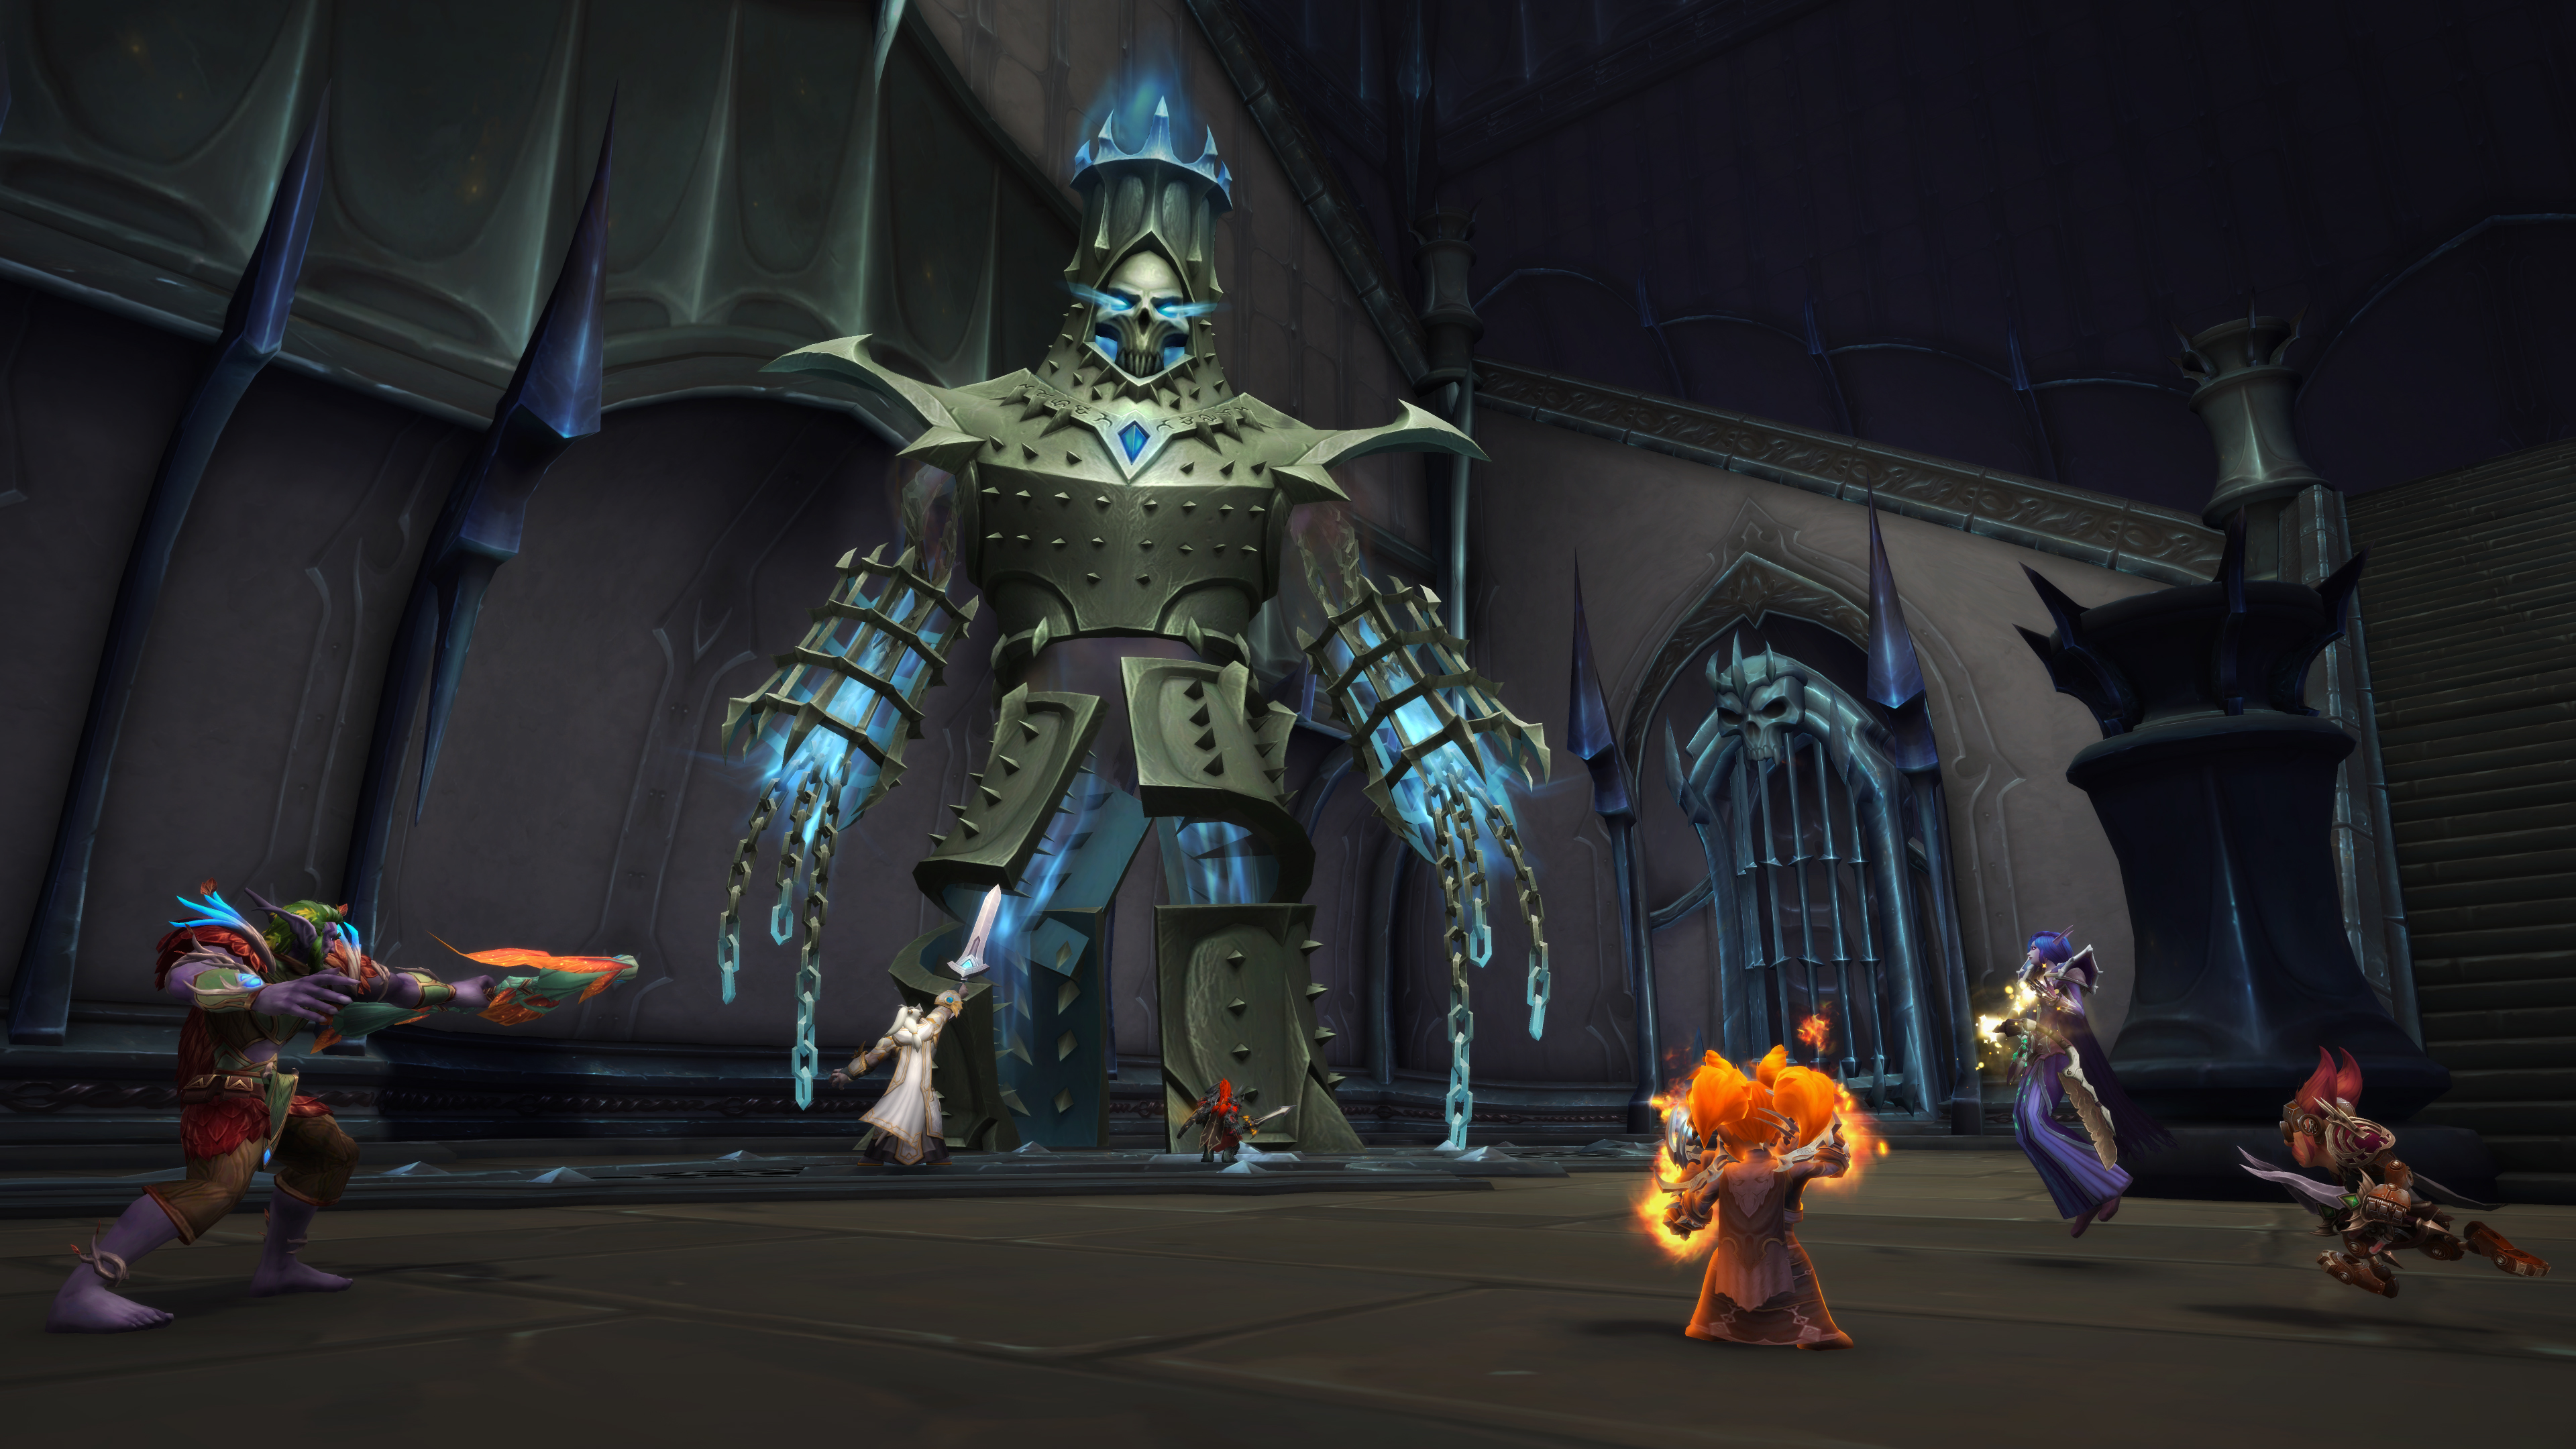 World of Warcraft - A group of players attacks a giant, armored minion of the nefarious Jailer in The Maw.